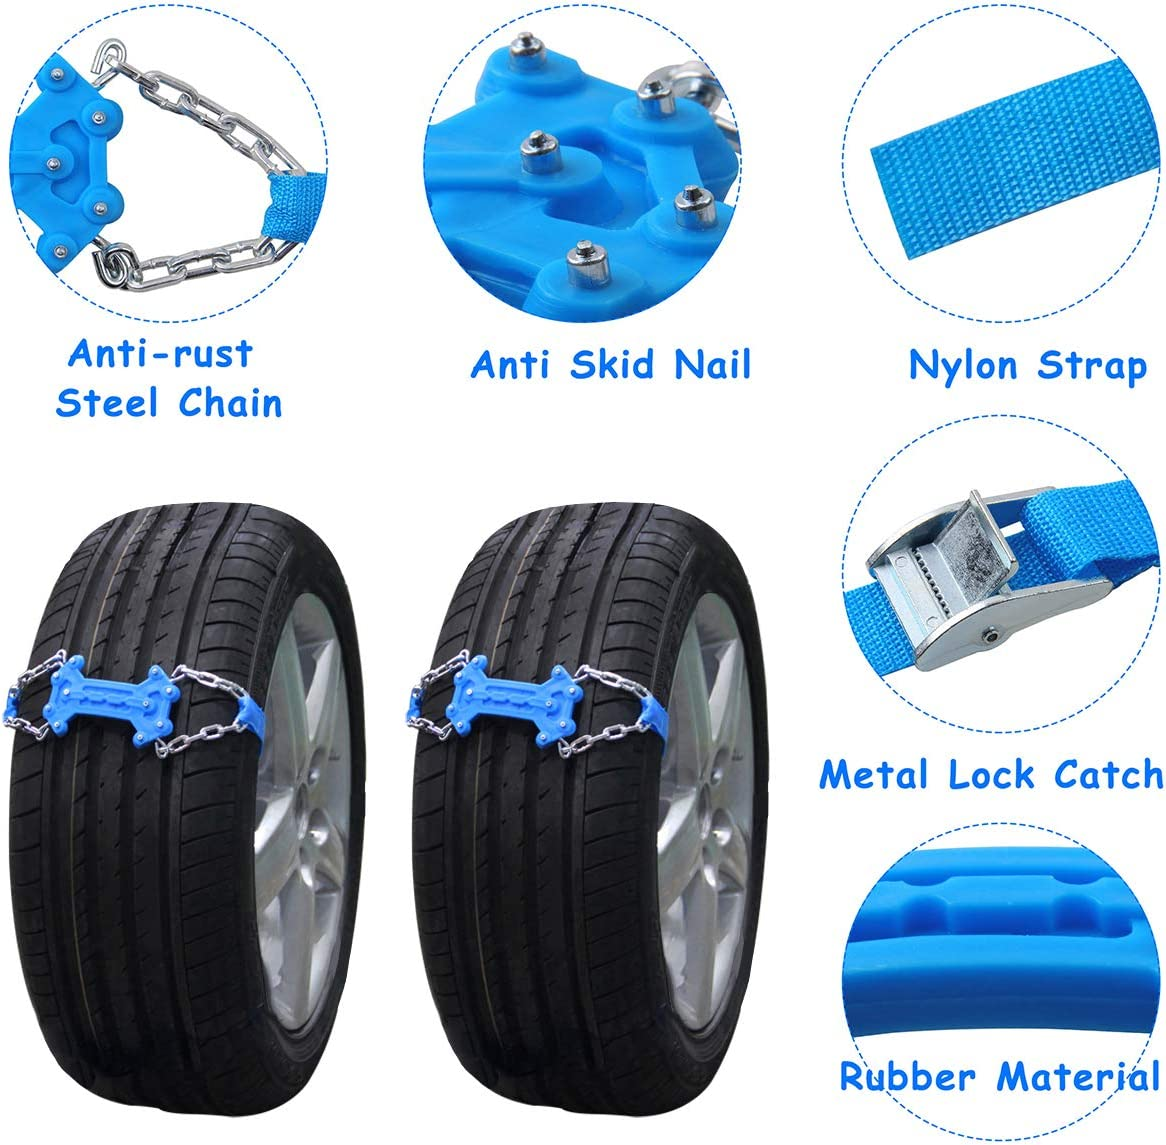 2pcs Universal Anti-Skid Chains of Wheel Winter Slip Proof Vehicle SUV Chain Emergency for Snow Mud Ice with Snow Shovel Glove Blue, Width:130mm-265mm Snow Chains Car Traction Aid